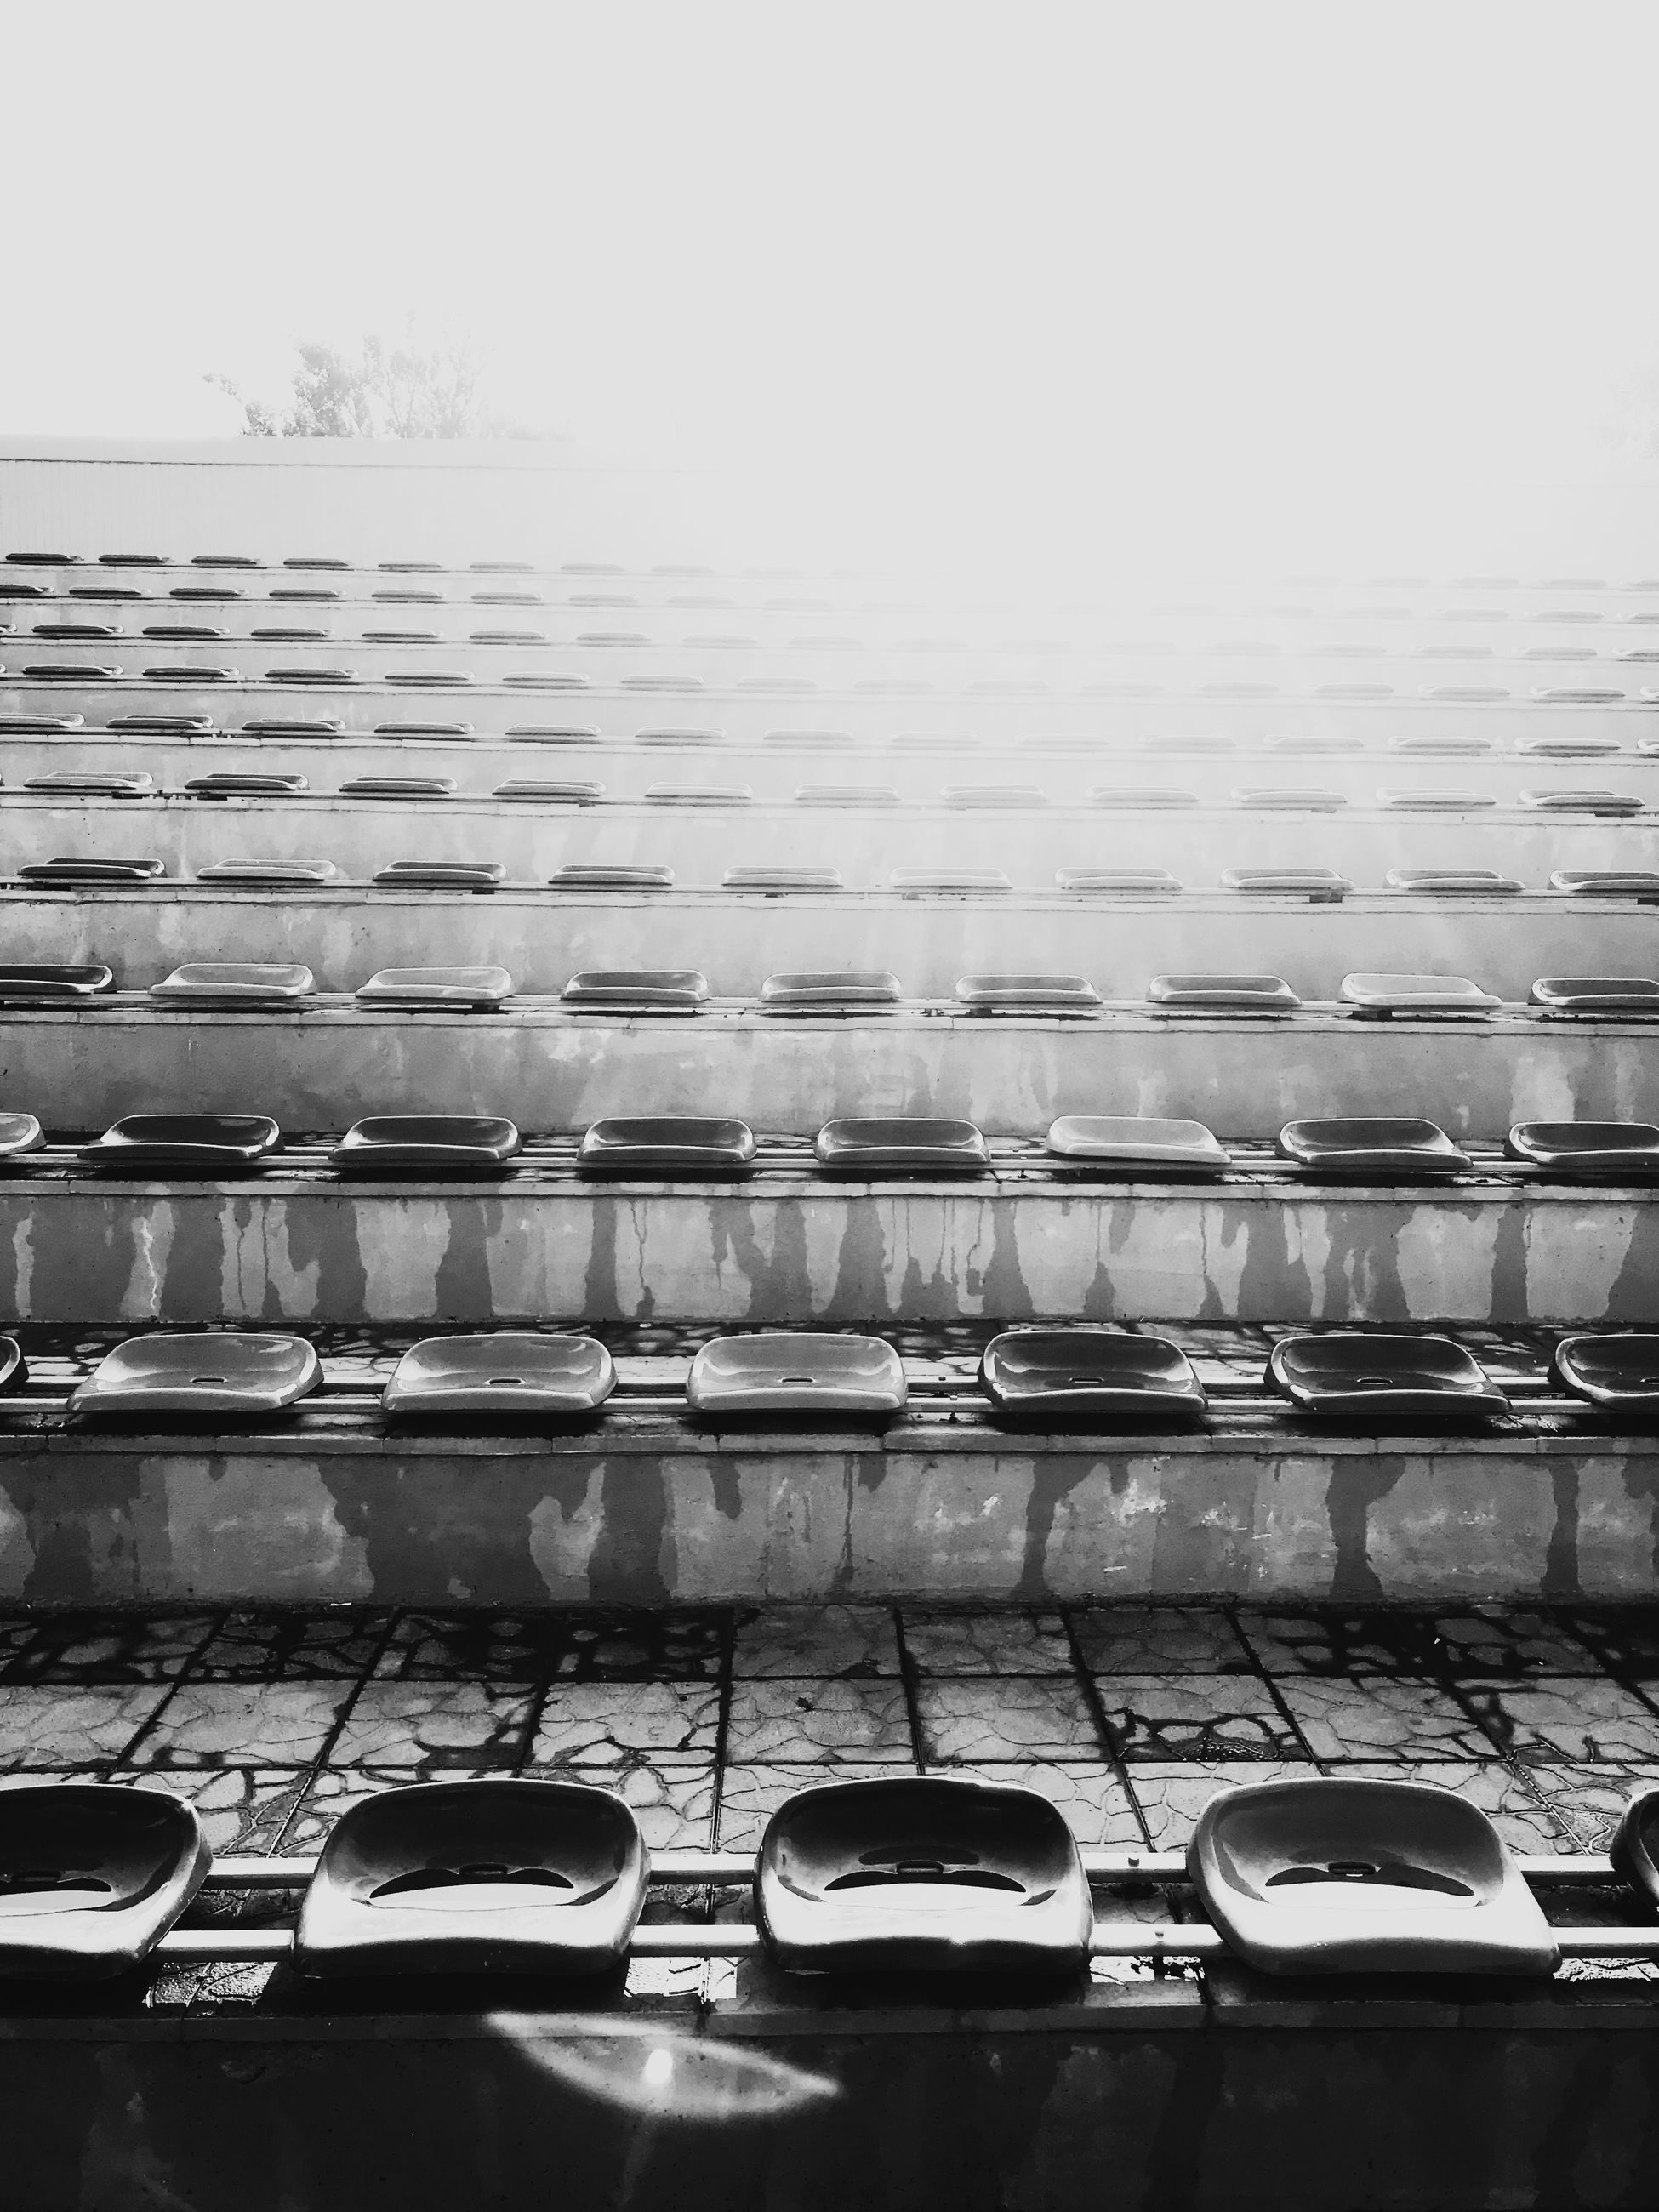 no people, side by side, in a row, car, indoors, absence, motor vehicle, arrangement, mode of transportation, reflection, glass - material, order, seat, water, still life, nature, large group of objects, chair, transportation, rain